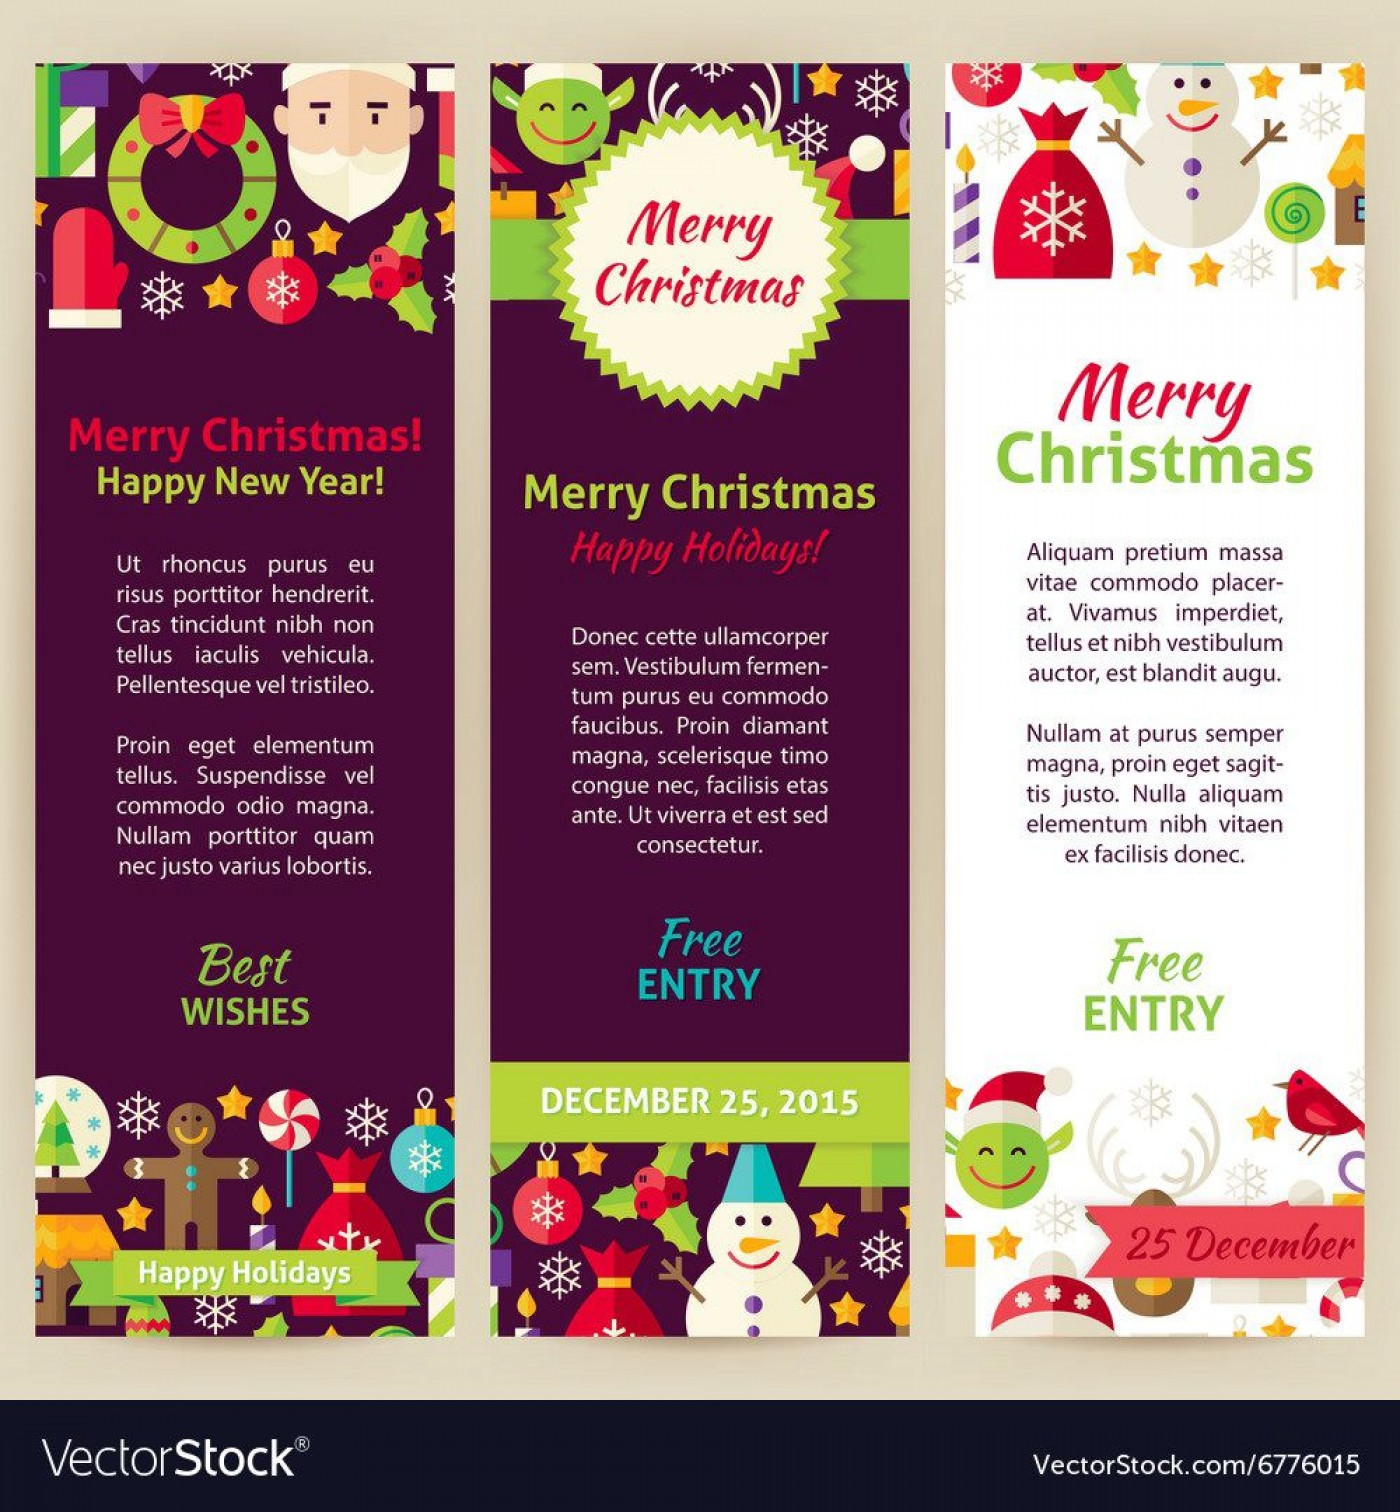 008 Unusual Christma Party Invitation Template Highest Quality  Holiday Download Free Psd1400